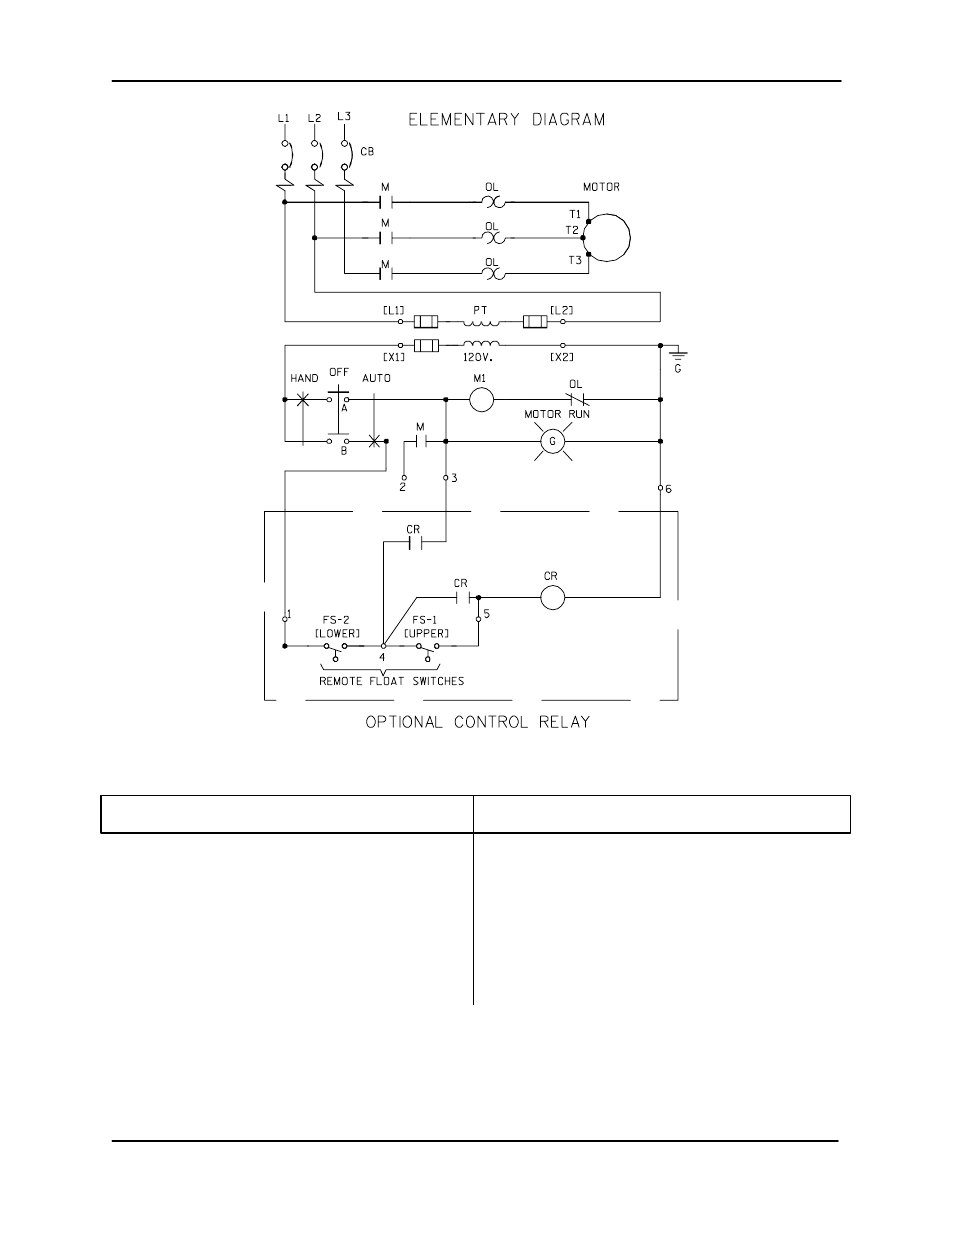 Repair Parts List Gorman Rupp Pumps S4c65 E10 460 3 861279 Thru Fuse Box Chart What Goes Where Page 1142084 User Manual 23 37